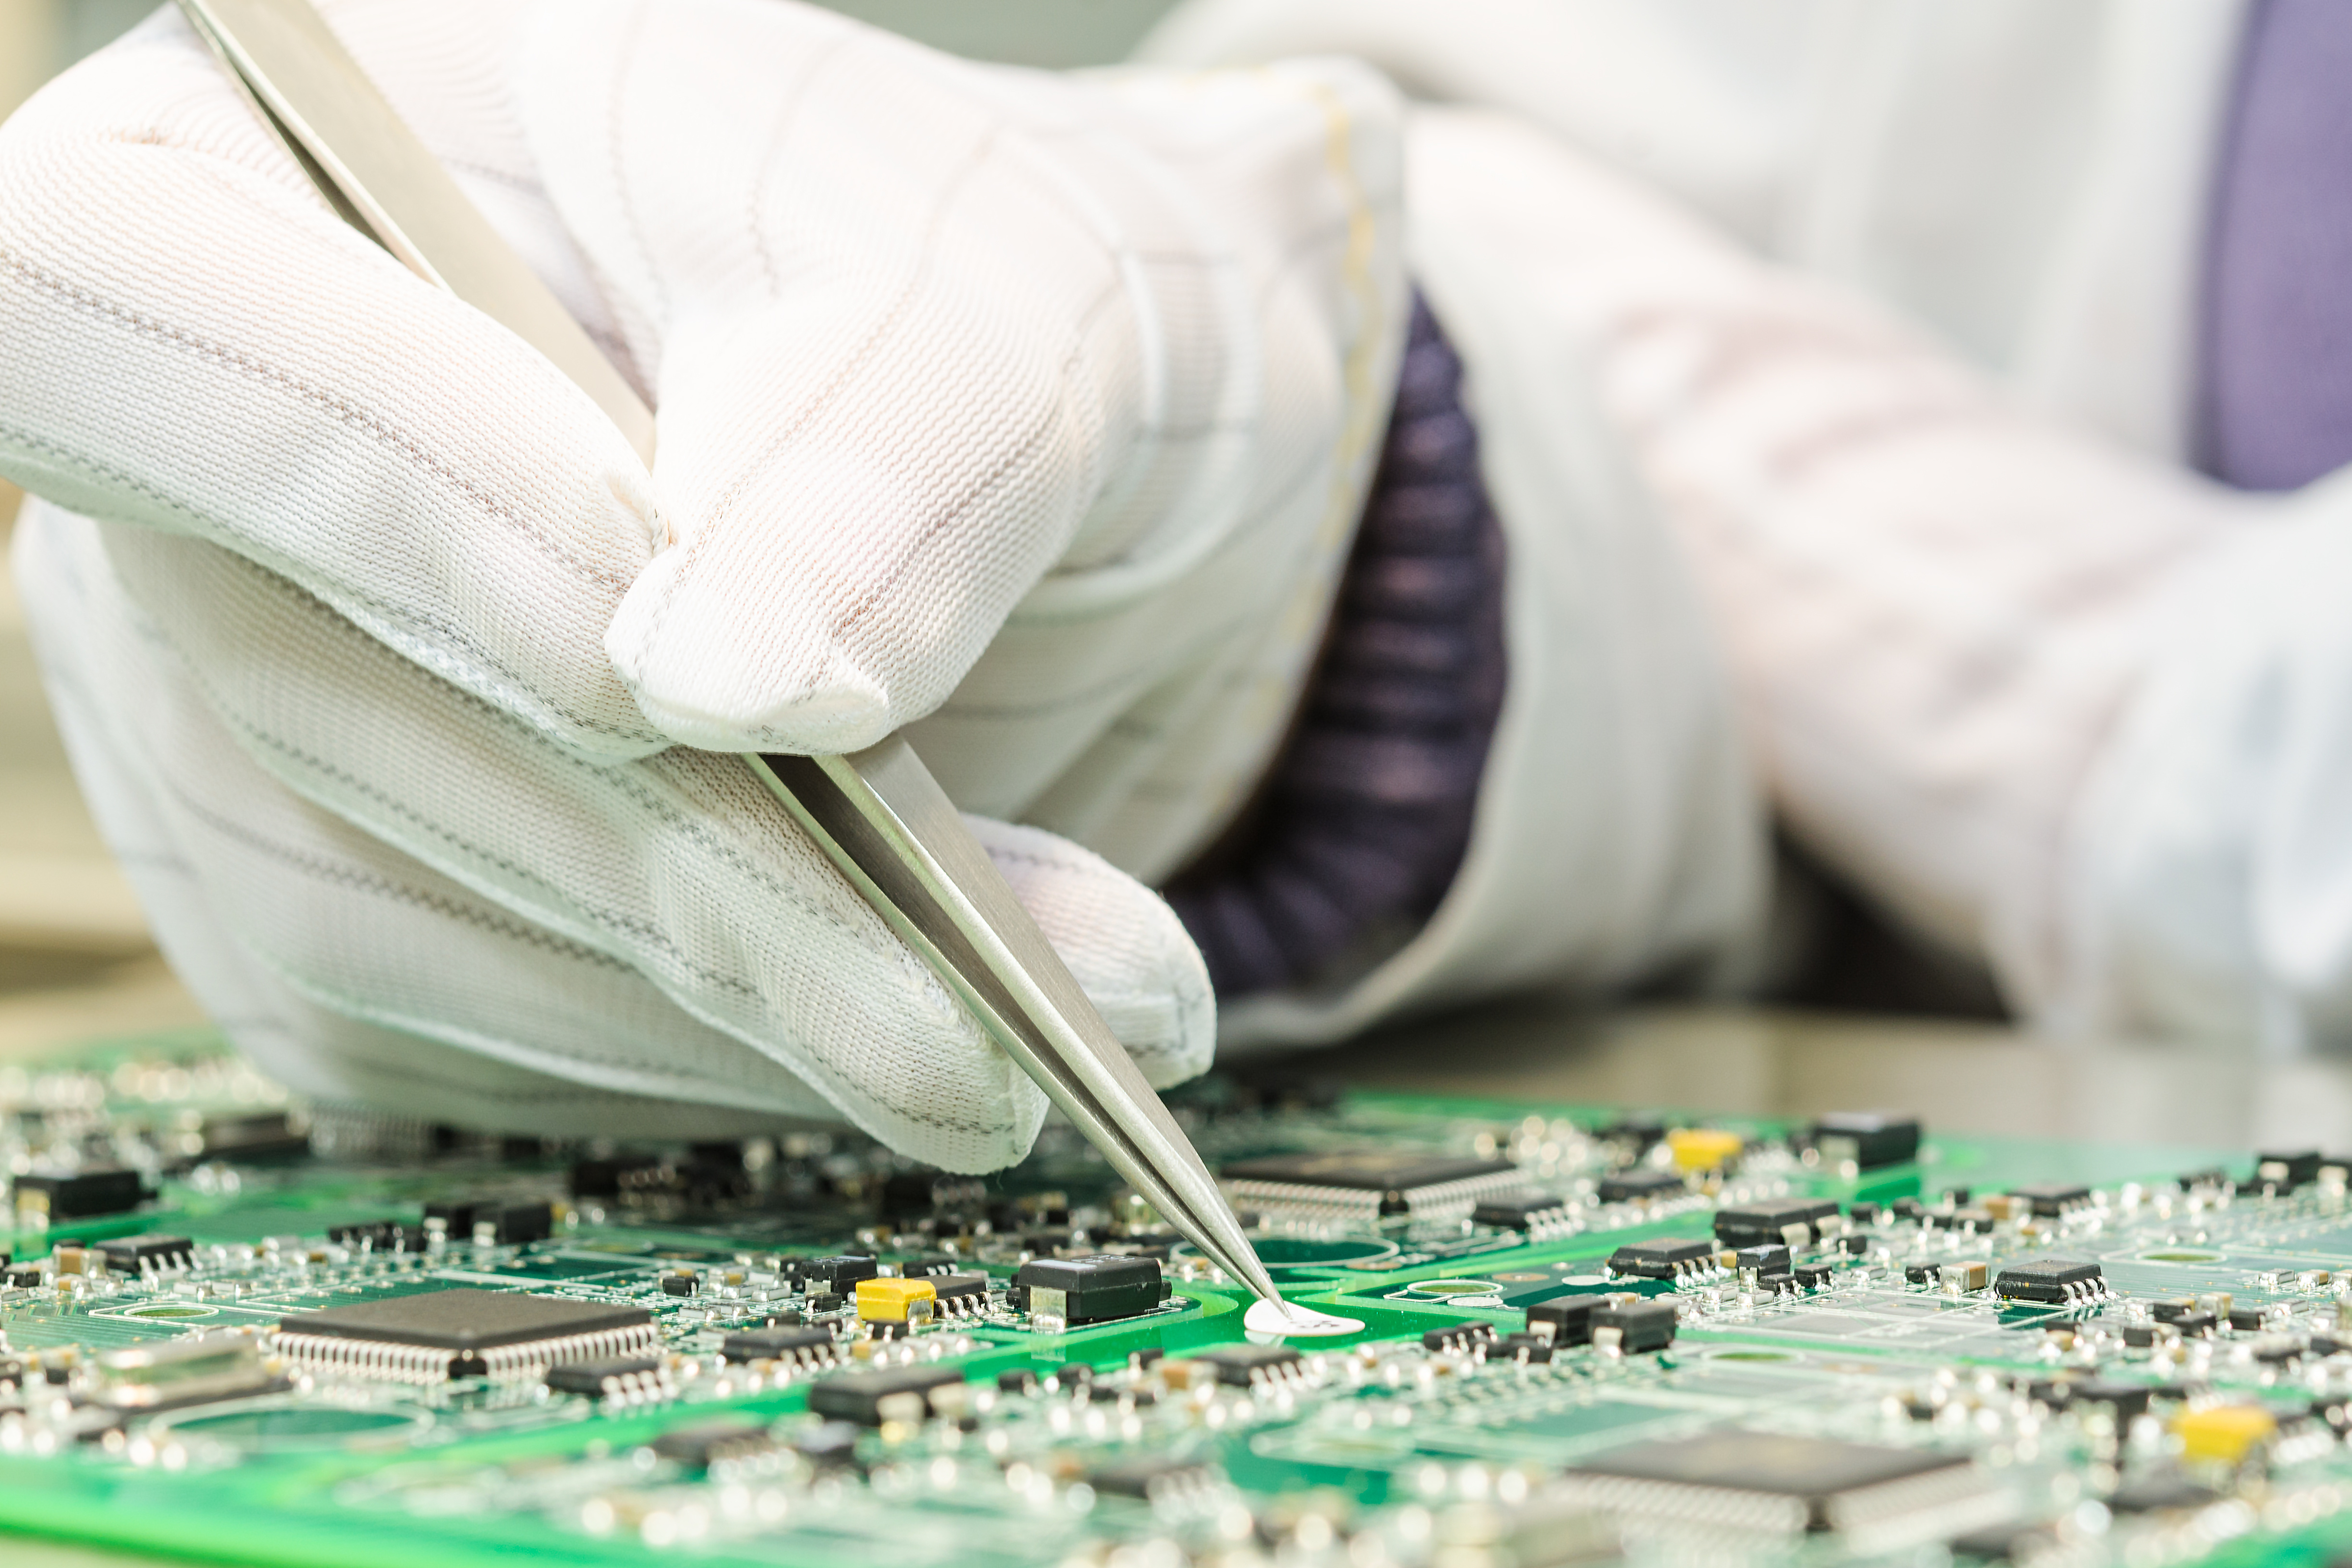 Engineering and electronic component quality control in QC lab on computer PCB turnkey manufacturing